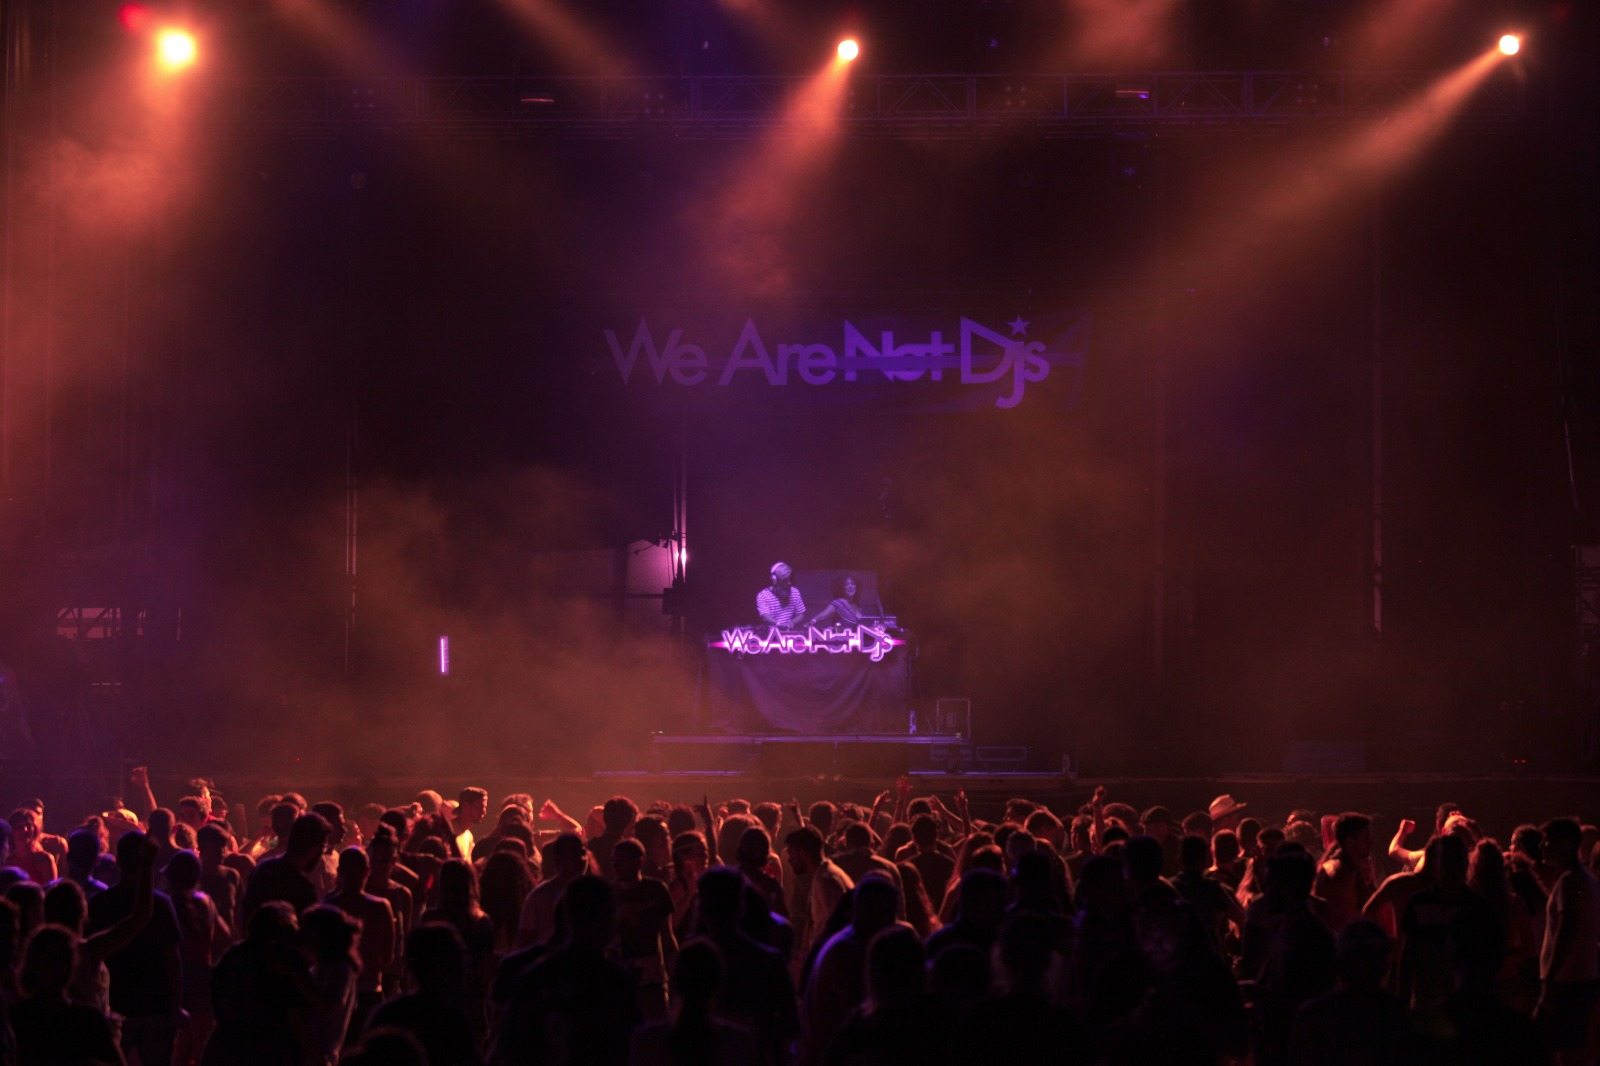 We Are Not Dj's 013 (by A.M. Piña).